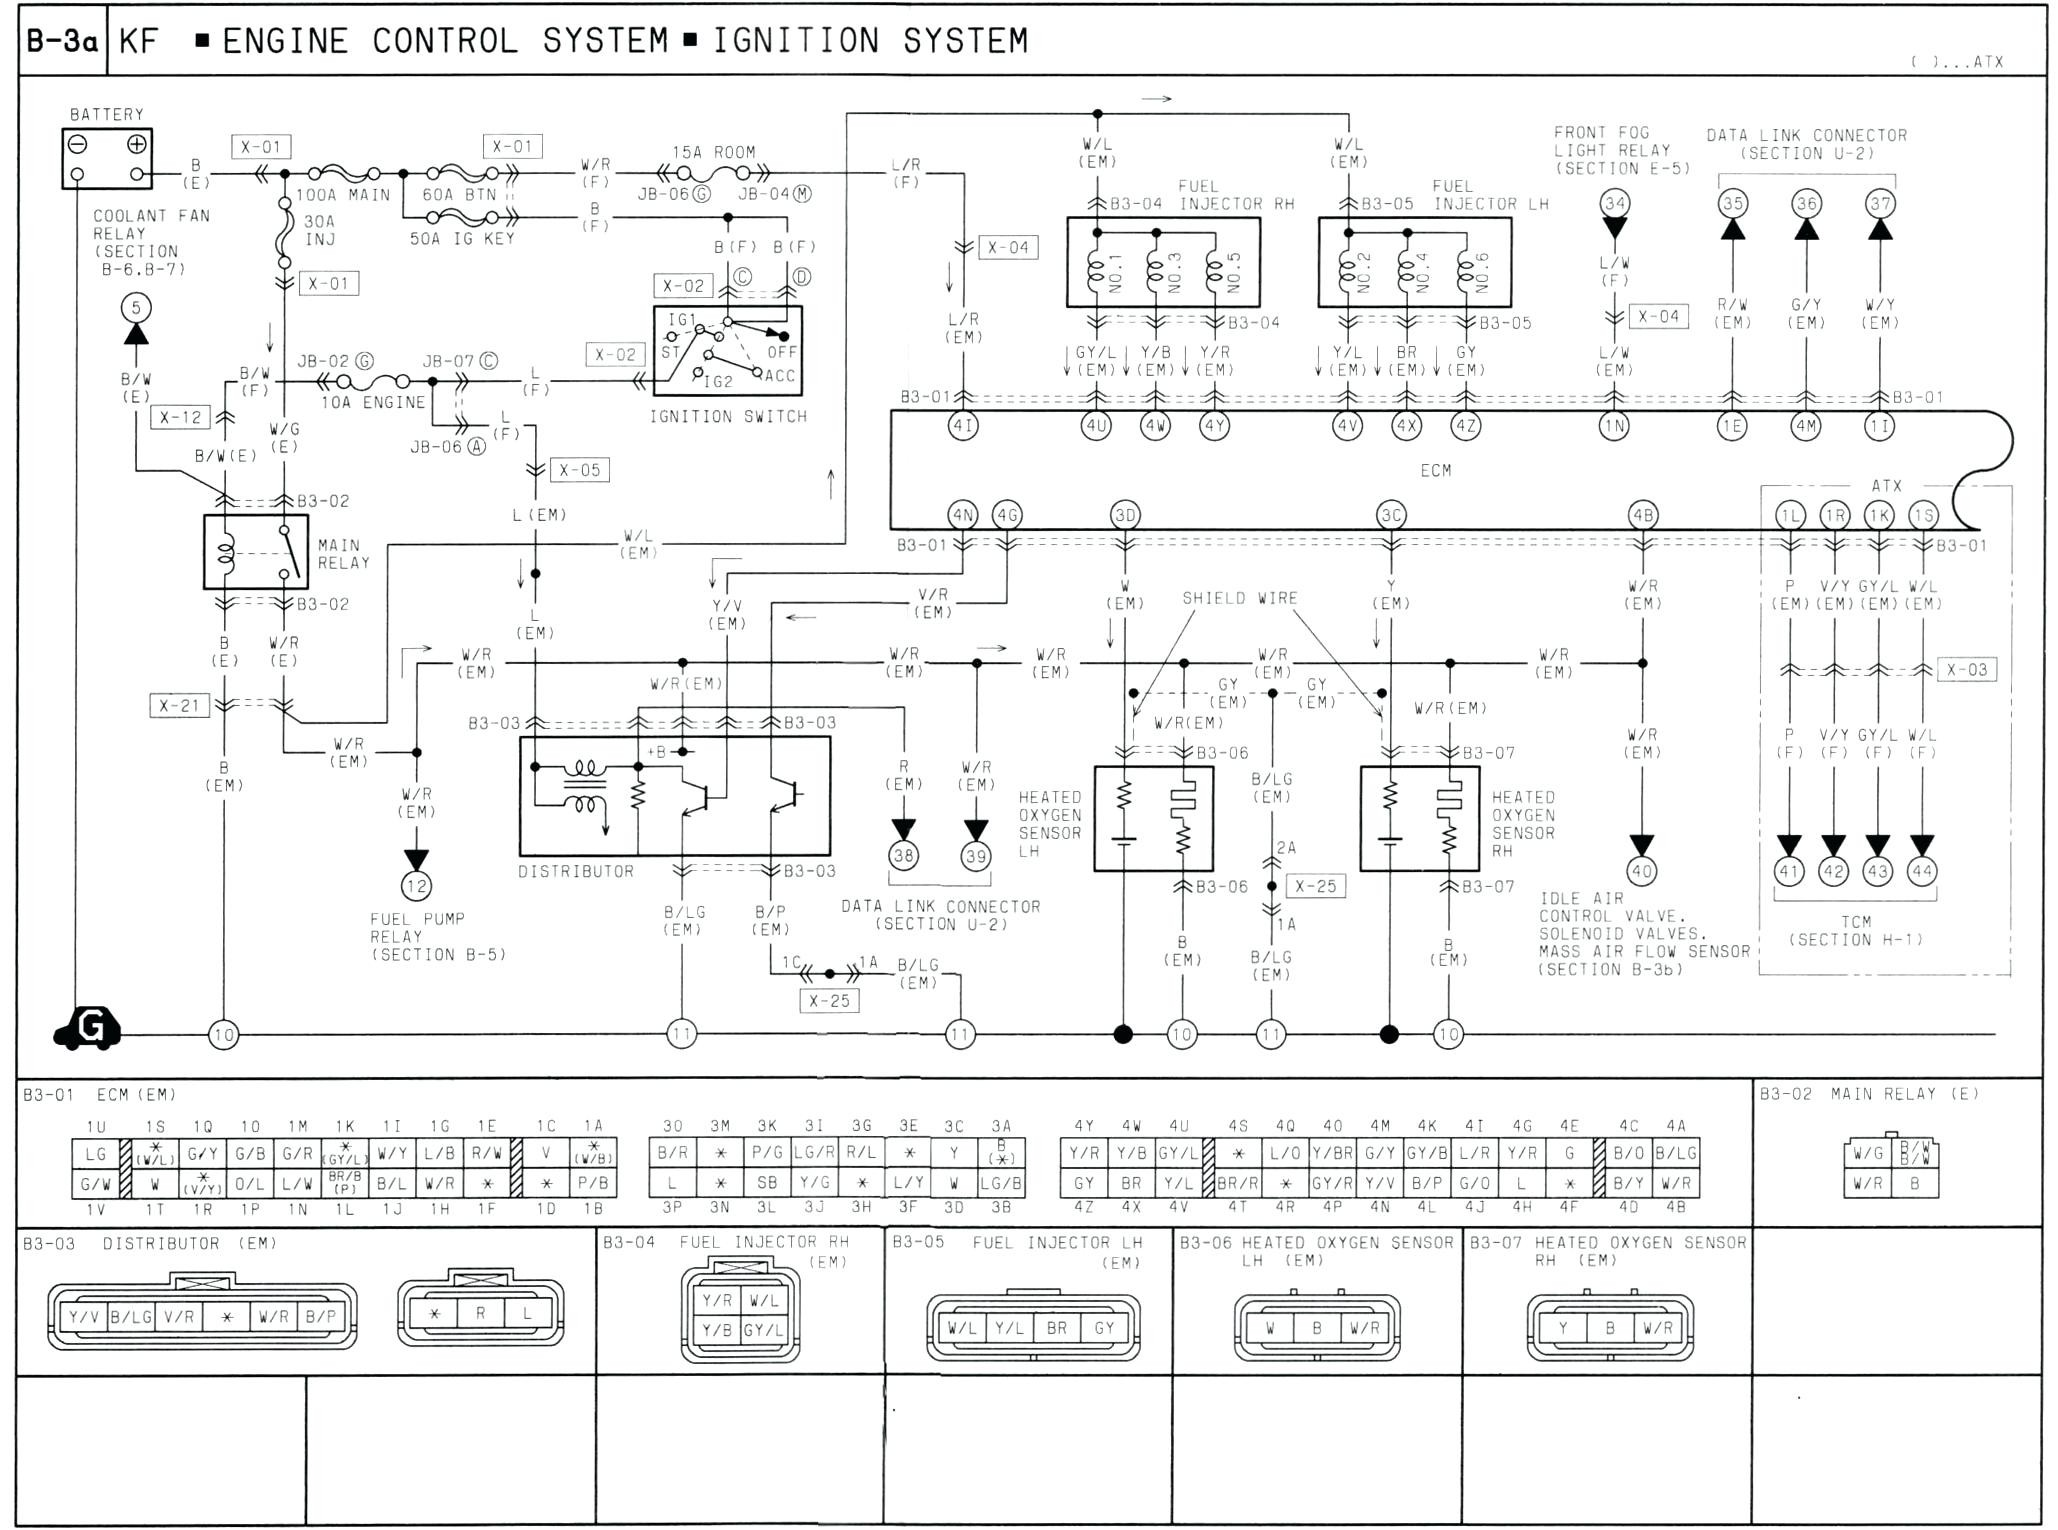 2008 Mazda 3 Engine Diagram Mazda 626 Engine Diagram Wiring Diagram for  2001 ford Explorer Of